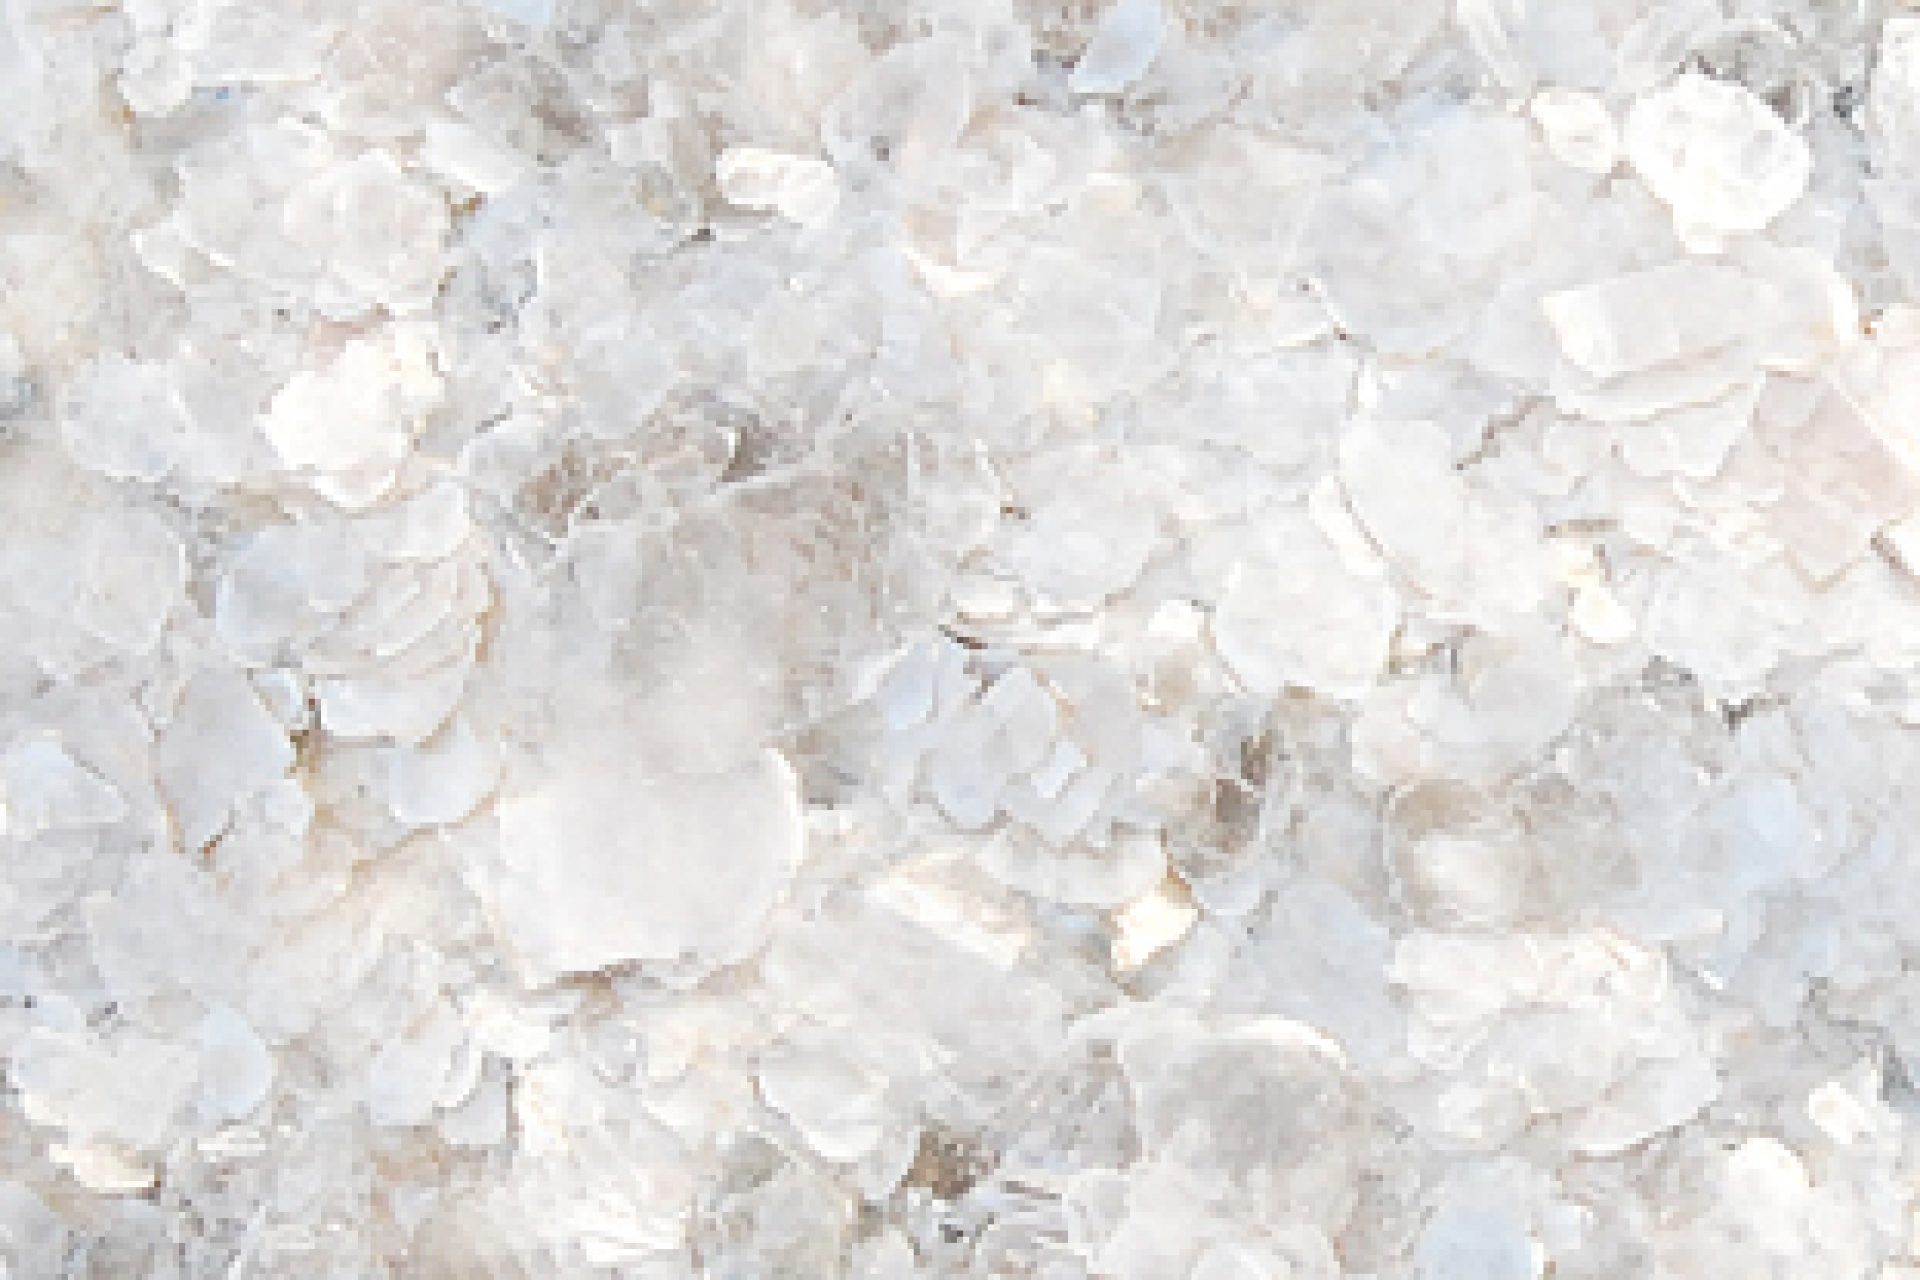 mica flakes2